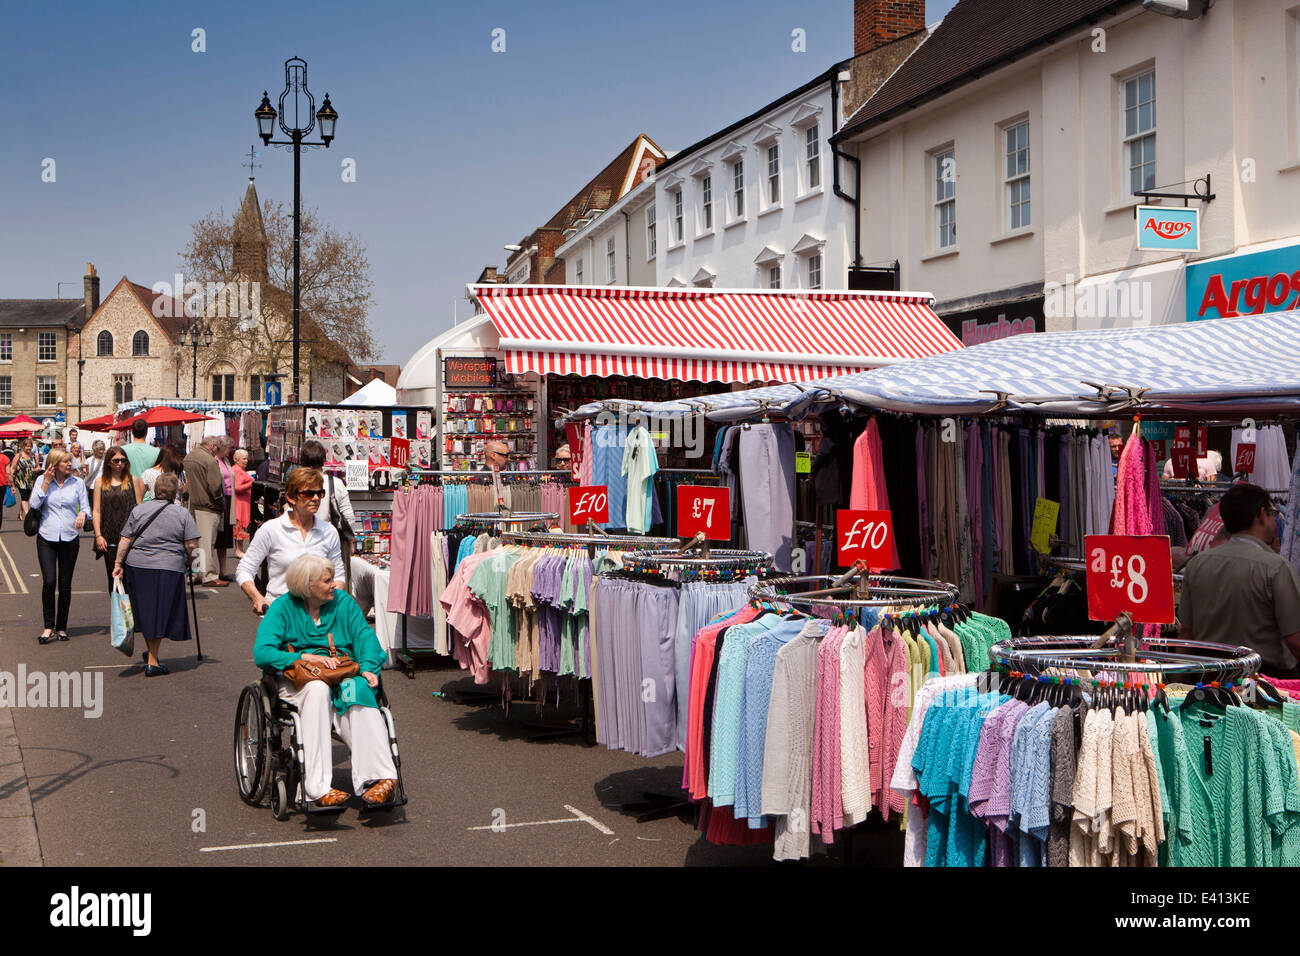 Open Air Markets Stock Photos & Open Air Markets Stock ...